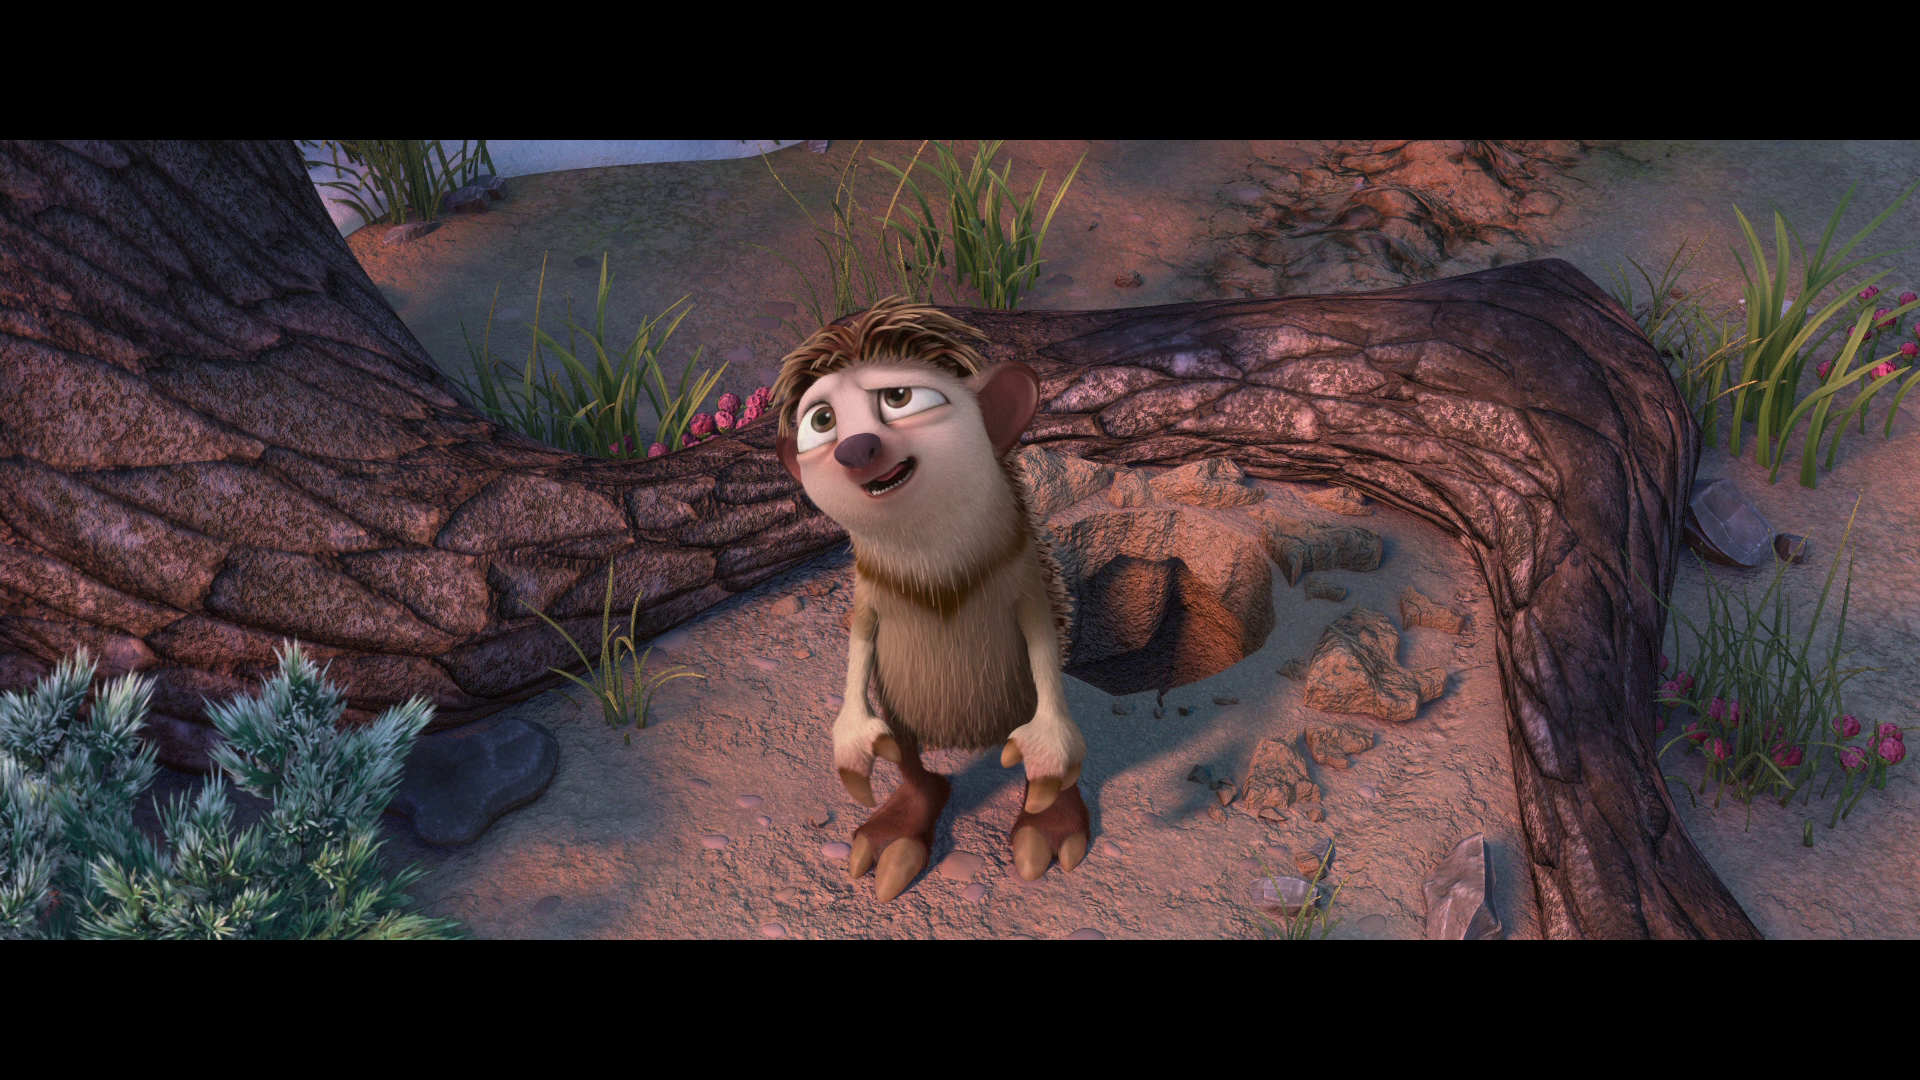 ice age: continental drift (blu-ray) : dvd talk review of the blu-ray